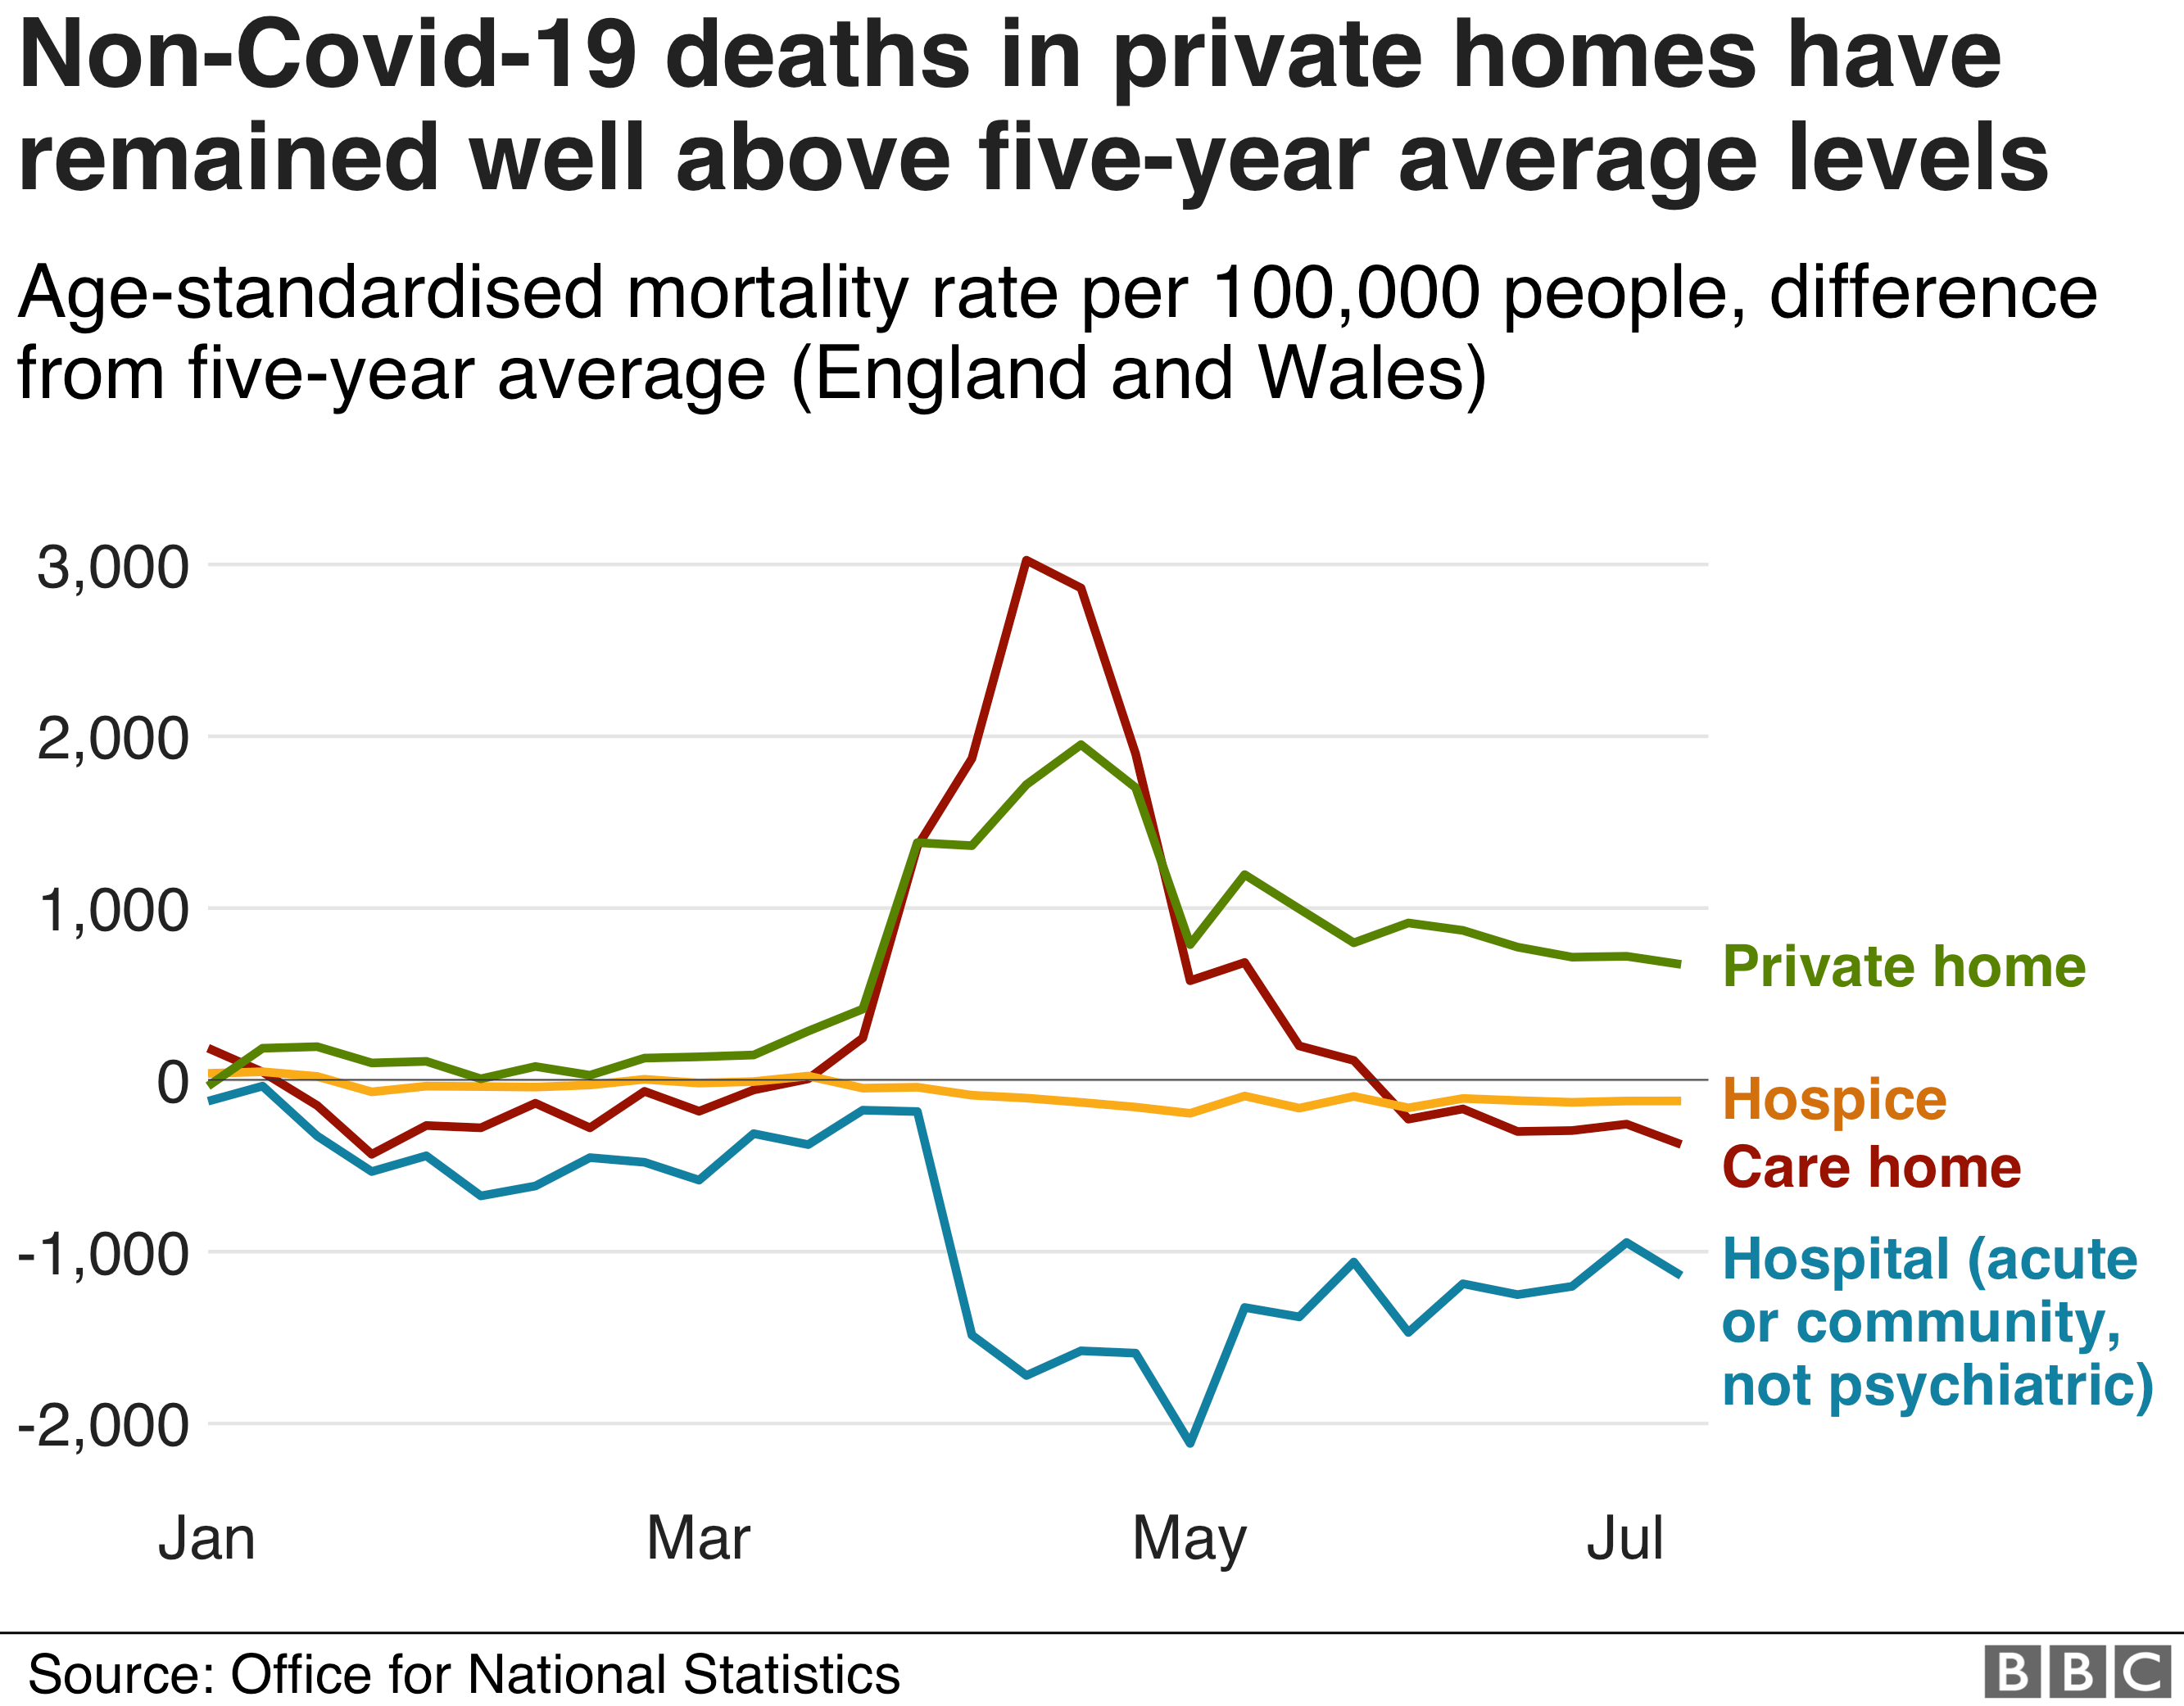 Non-Covid deaths in different settings in 2020